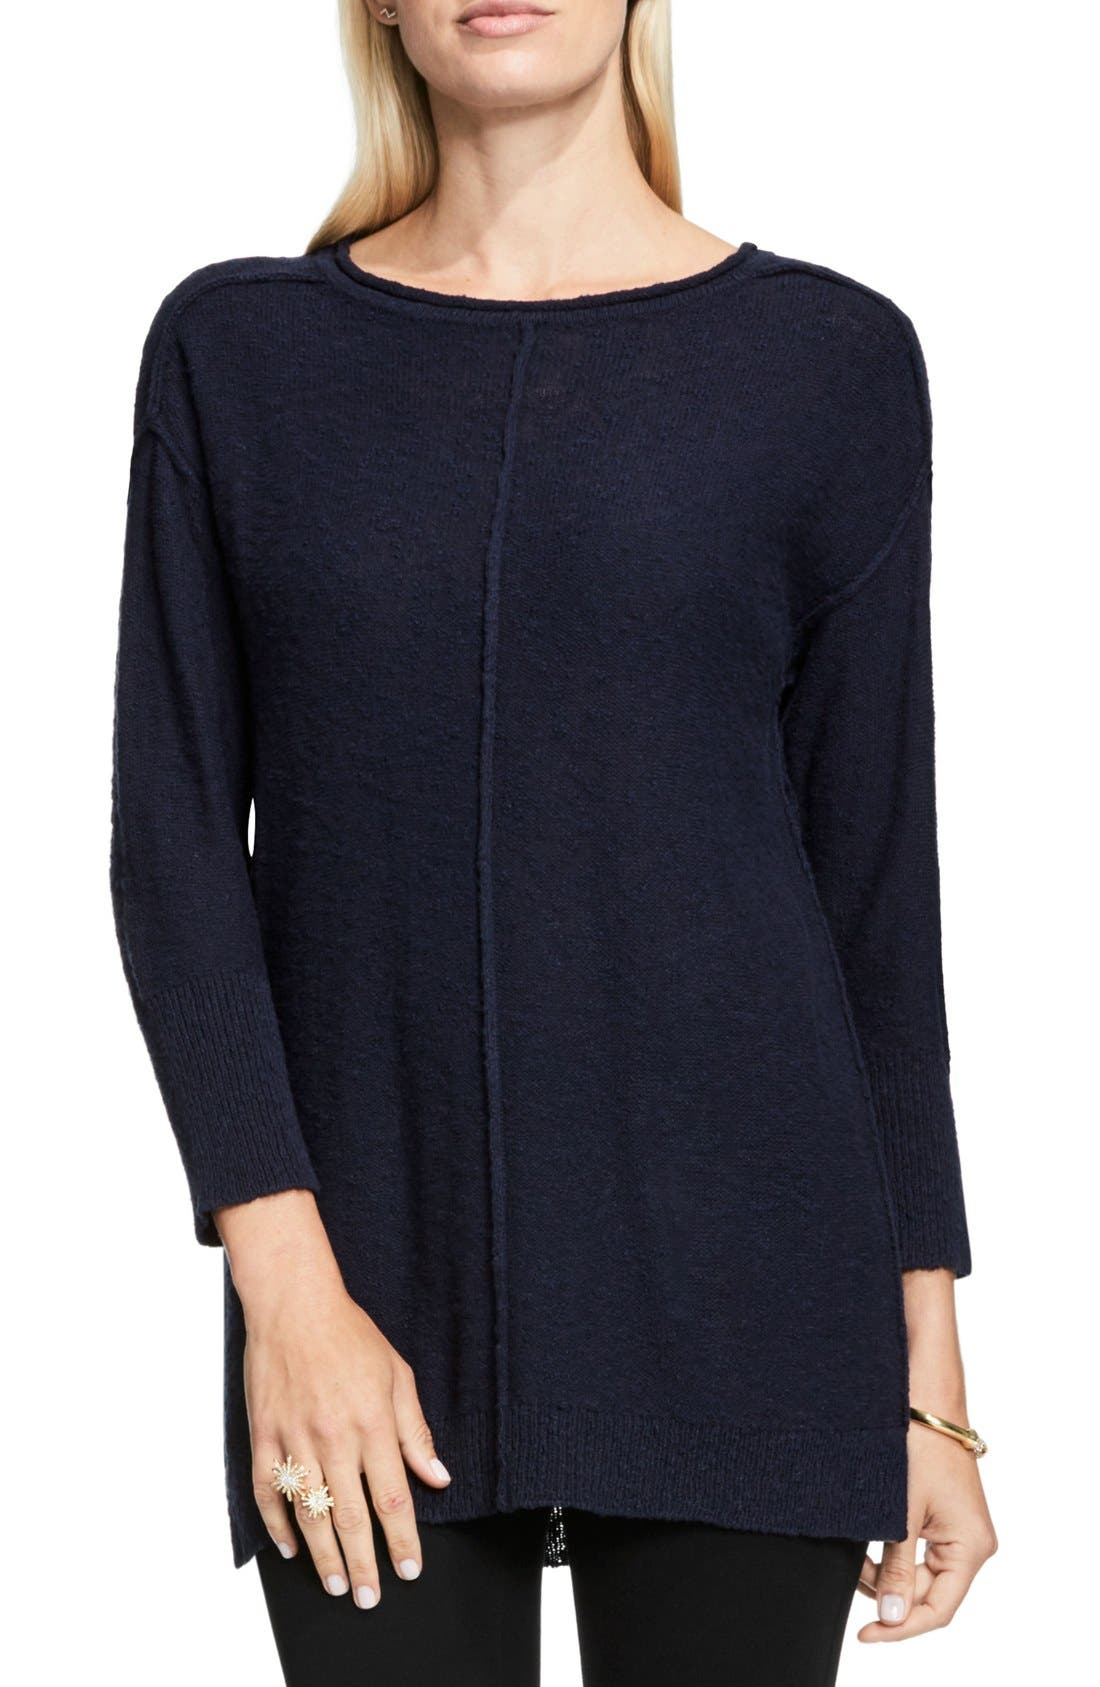 Alternate Image 1 Selected - Two by Vince Camuto Exposed Seam Sweater